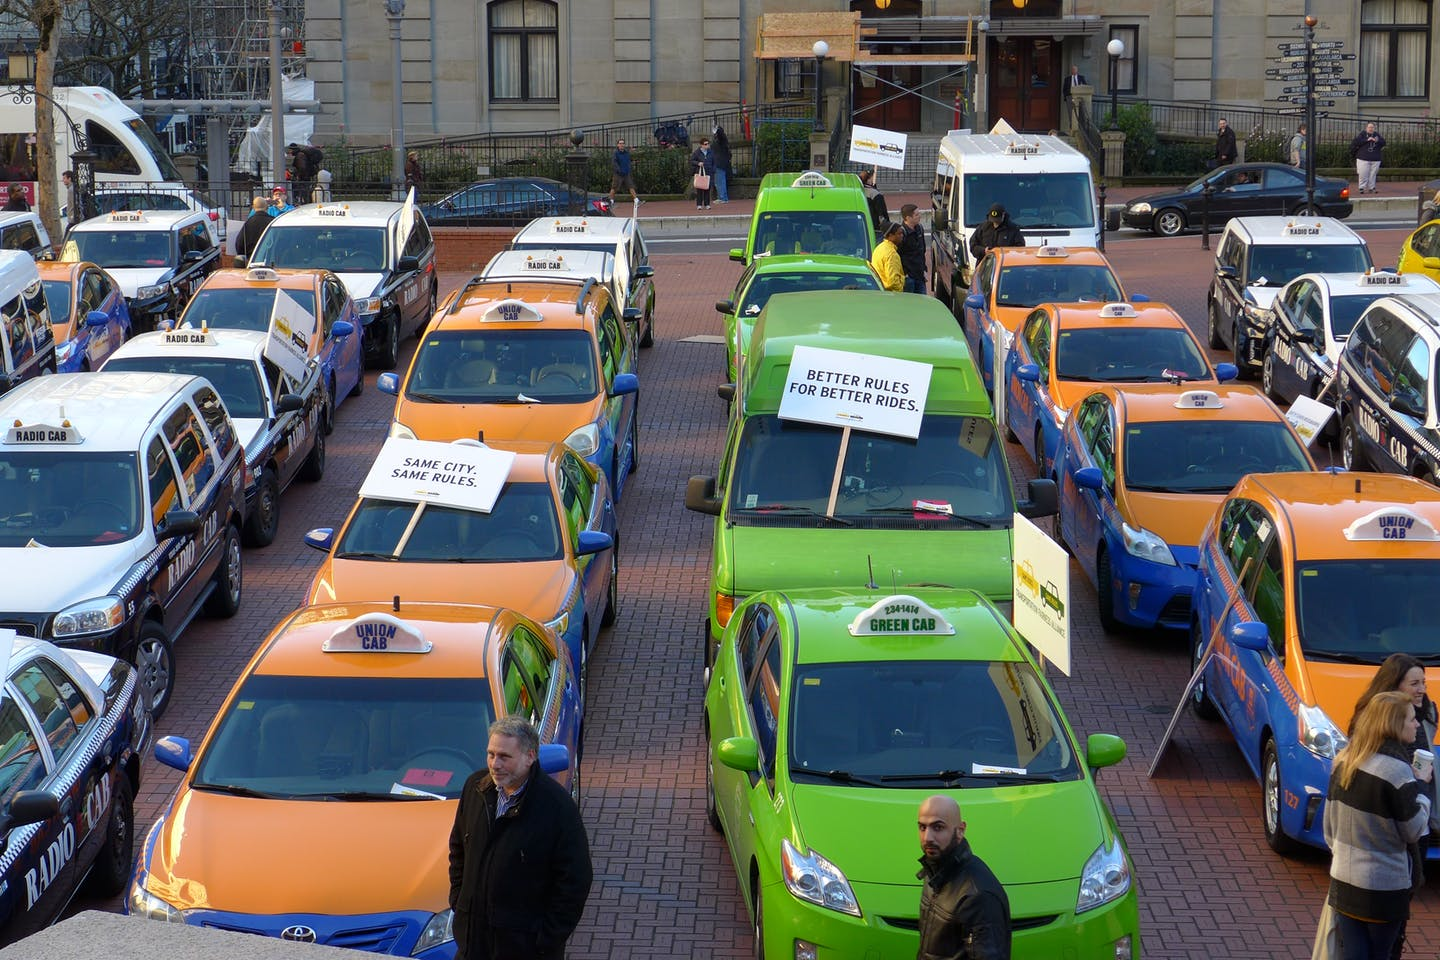 Protest against ride-sharing services in Portland, US